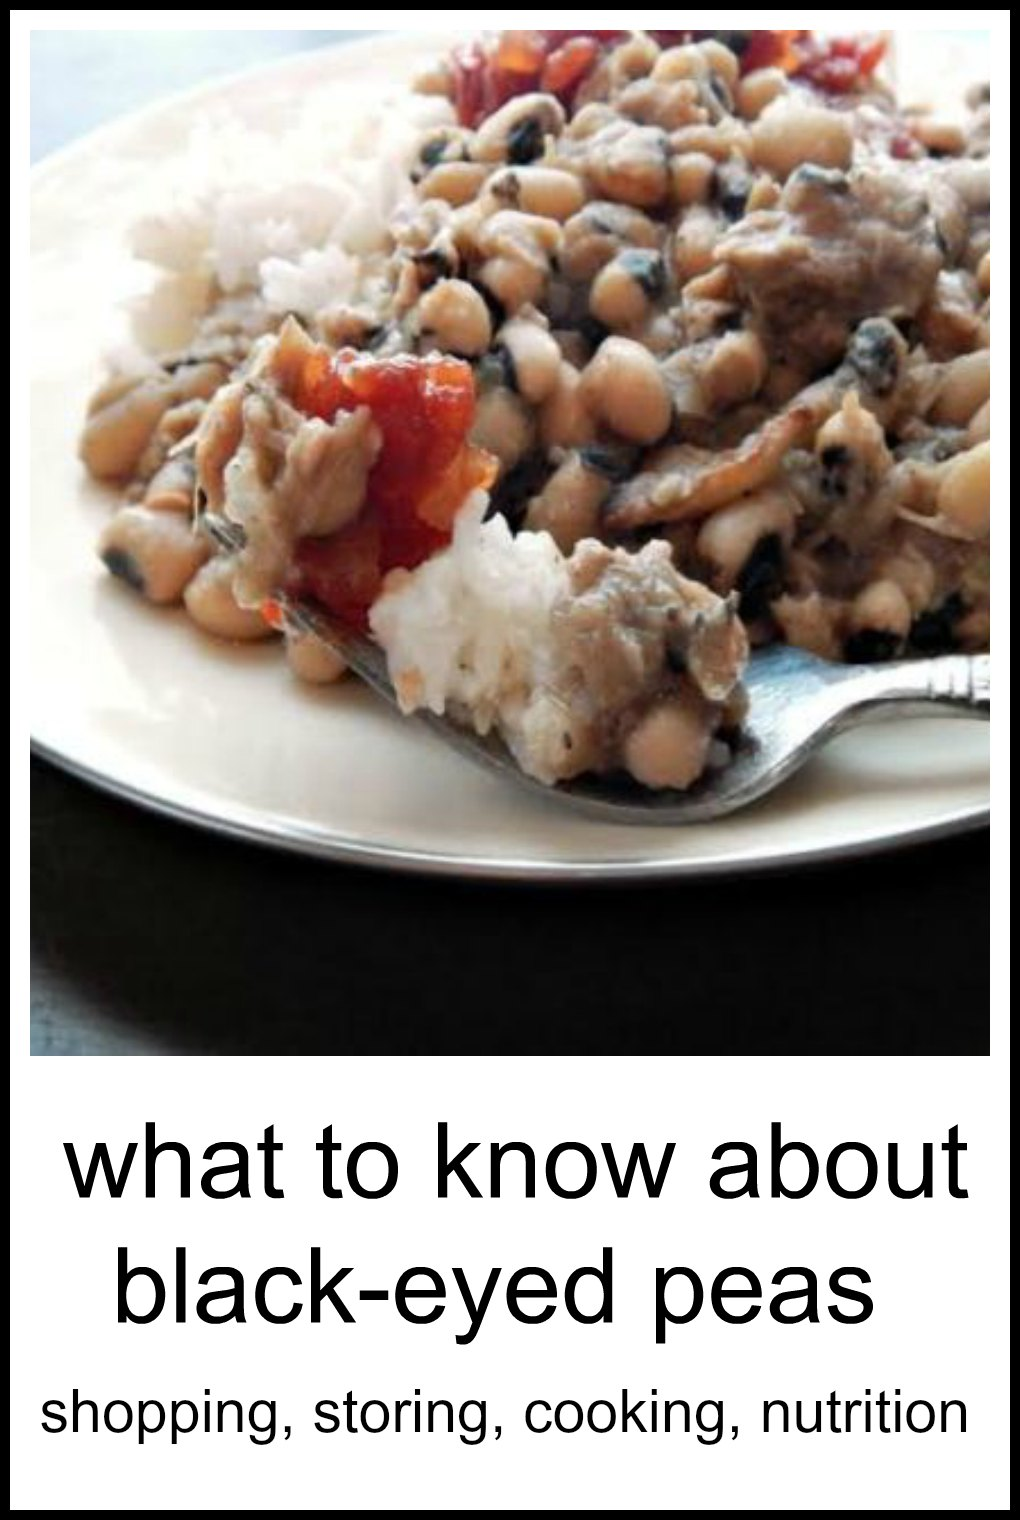 What to Know About Black Eyed Peas, Cooking, Shopping, Storing and Nutrition - everything you need to know about this member of the legume family whether canned, dried or frozen. #BlackEyedPeas #StoringBlackEyedPeas #CookingBlackEyedPEas